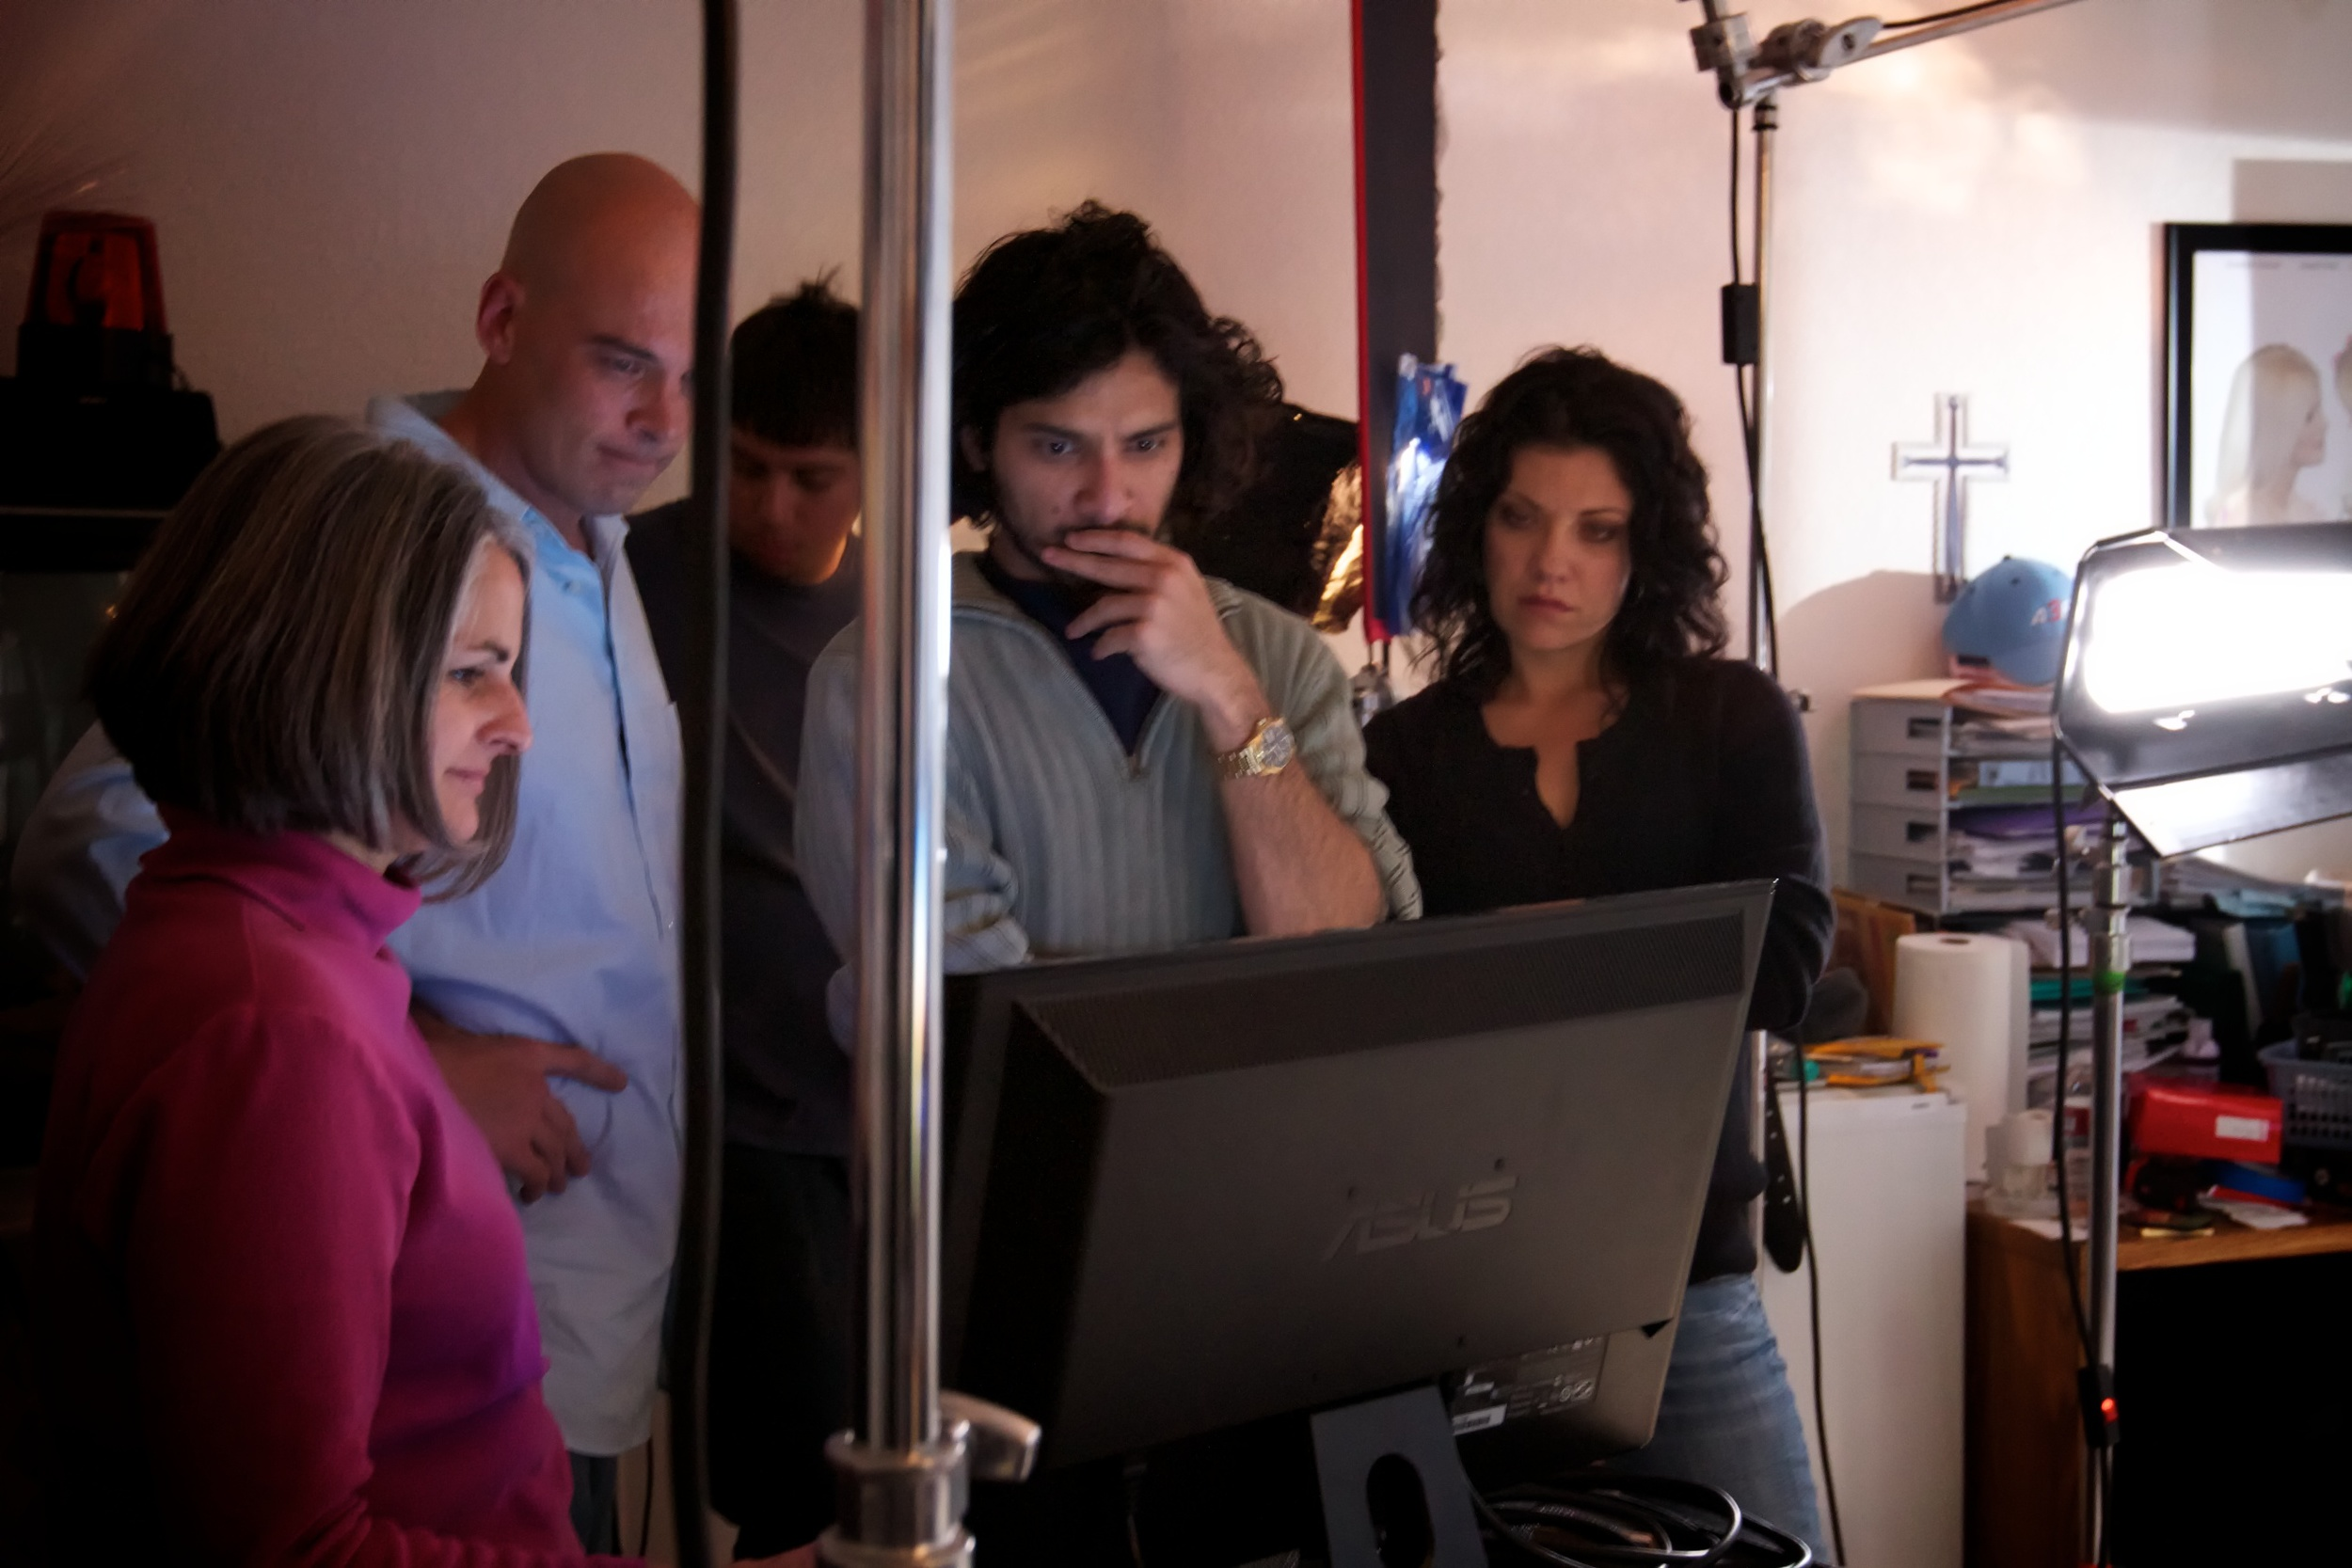 On_Set_Paranoia_Motion_Picture_2011-02-25_RMH_©2011_Biswas-Dresback_LLC_2753.jpg